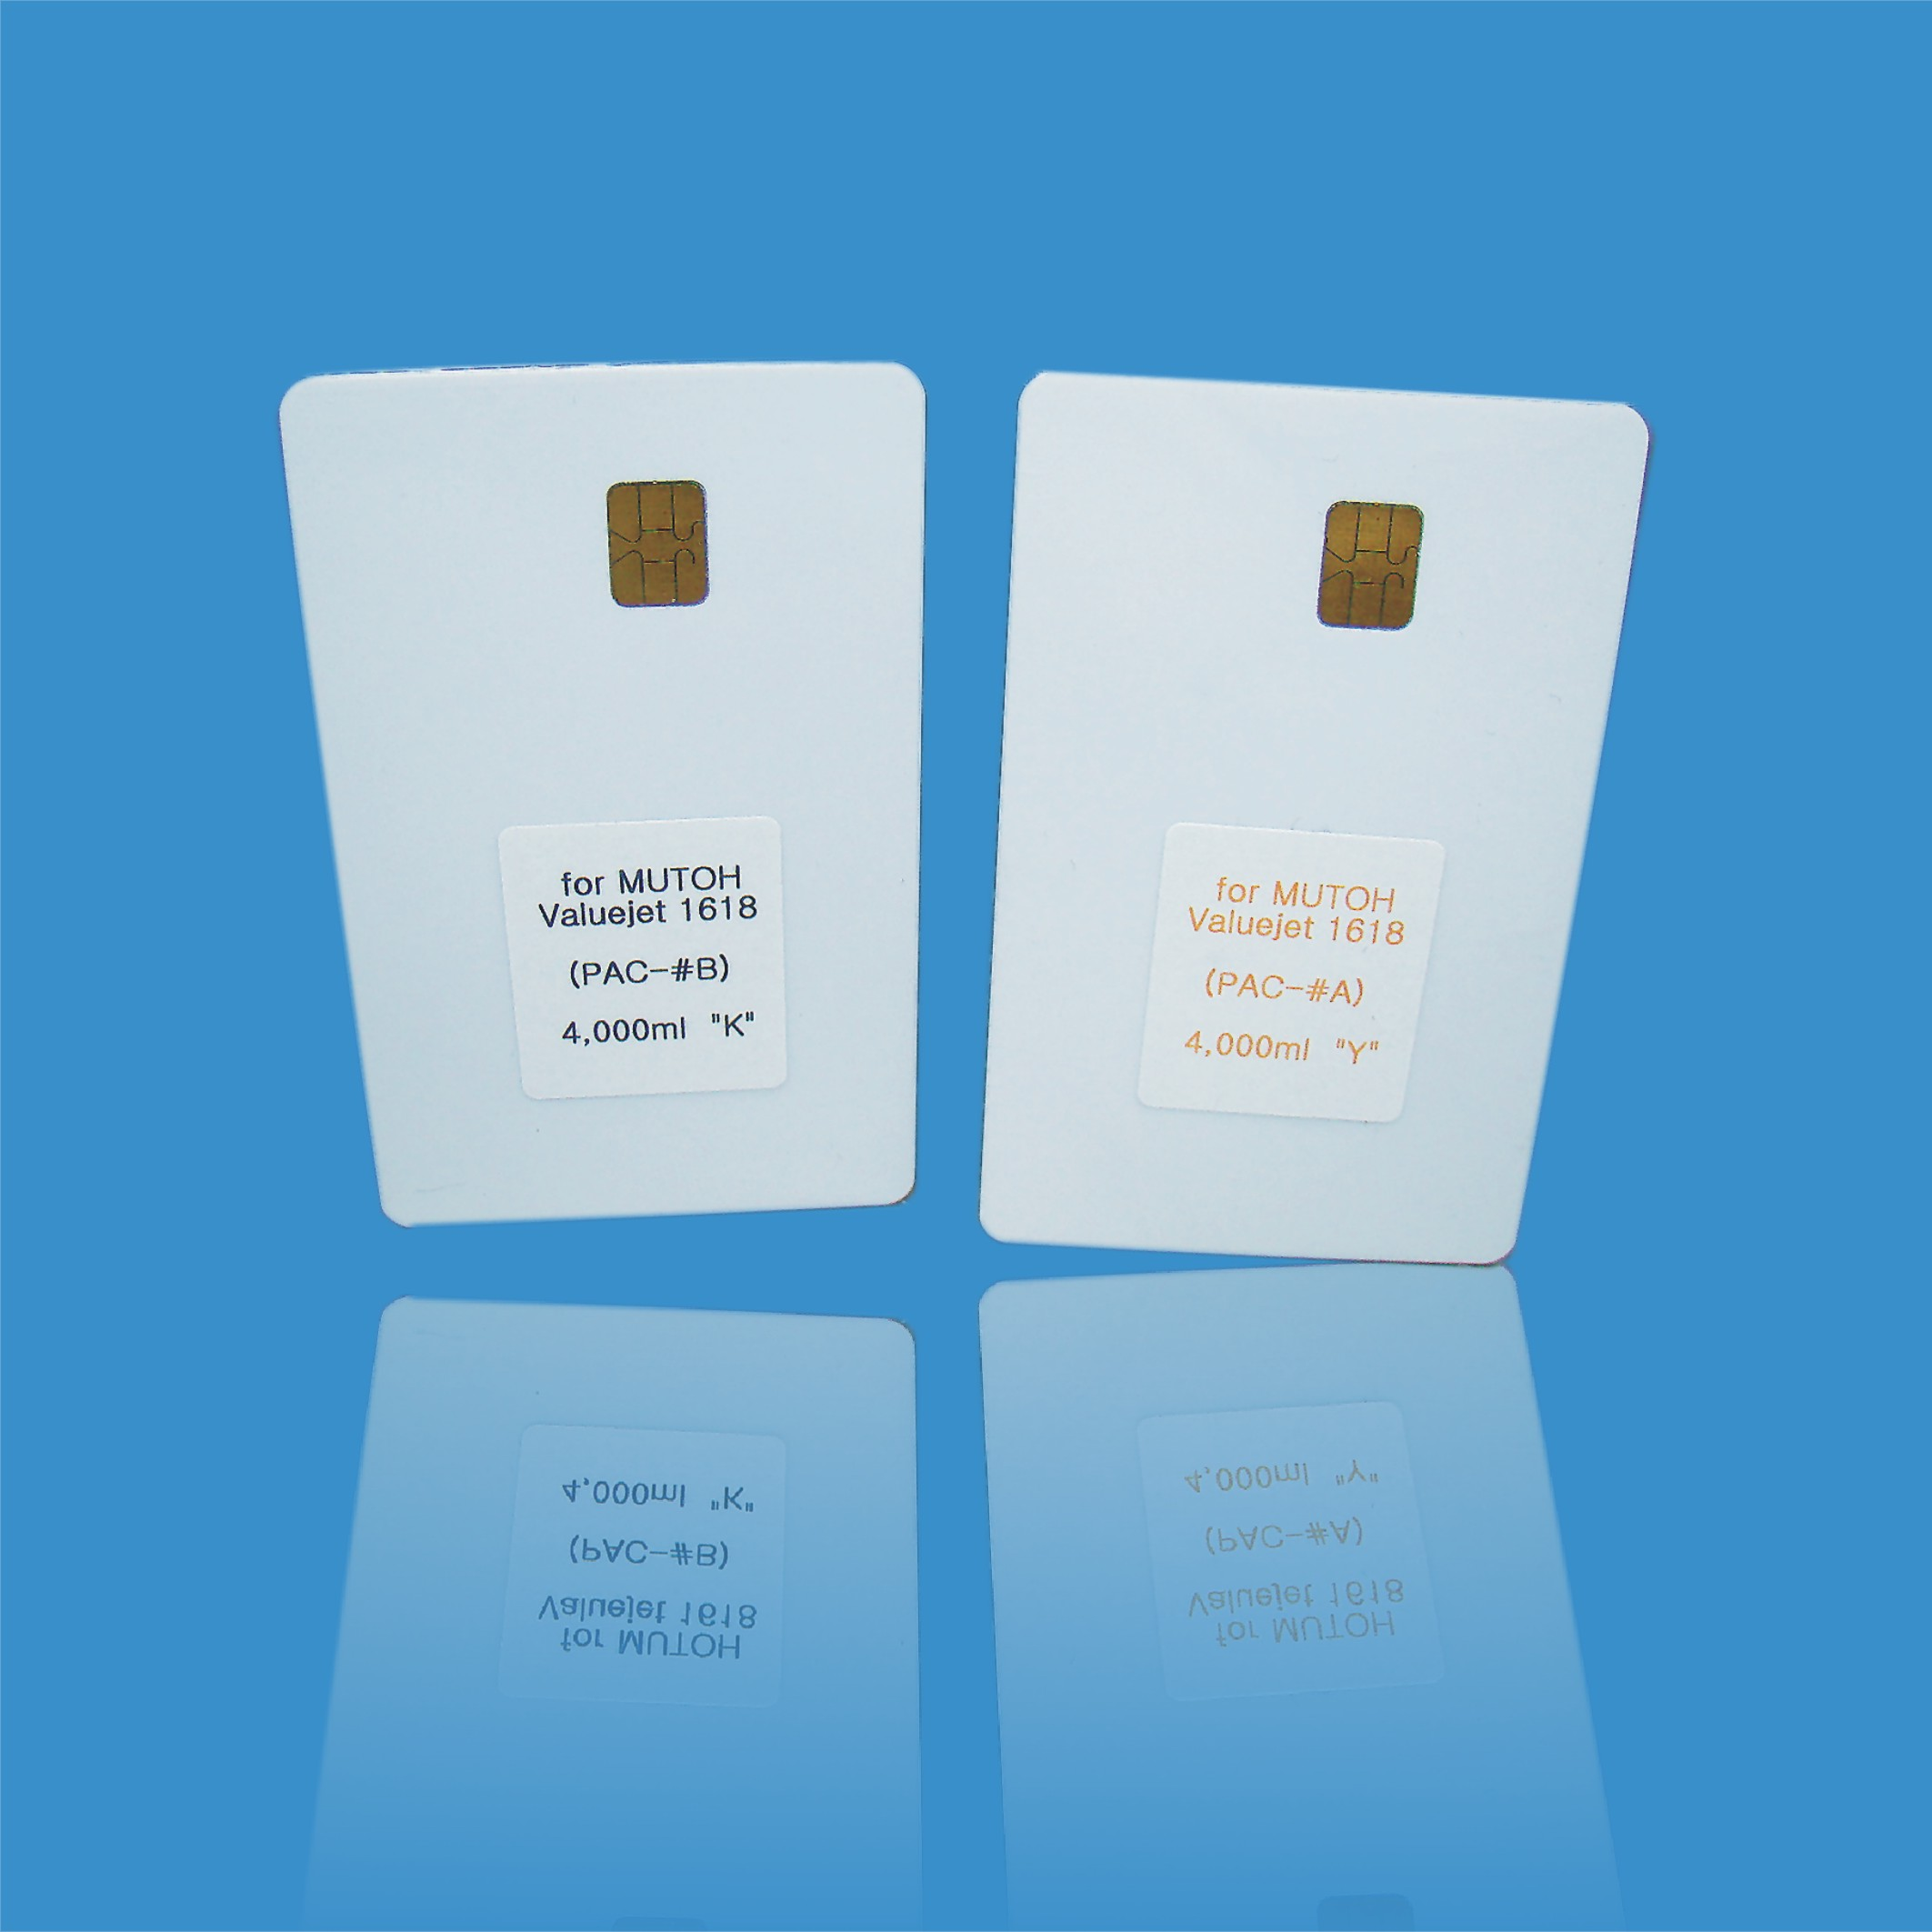 Mutoh chip smart card chip for VJ-MSINK 3A ECO-SOL ULTRA INK chip